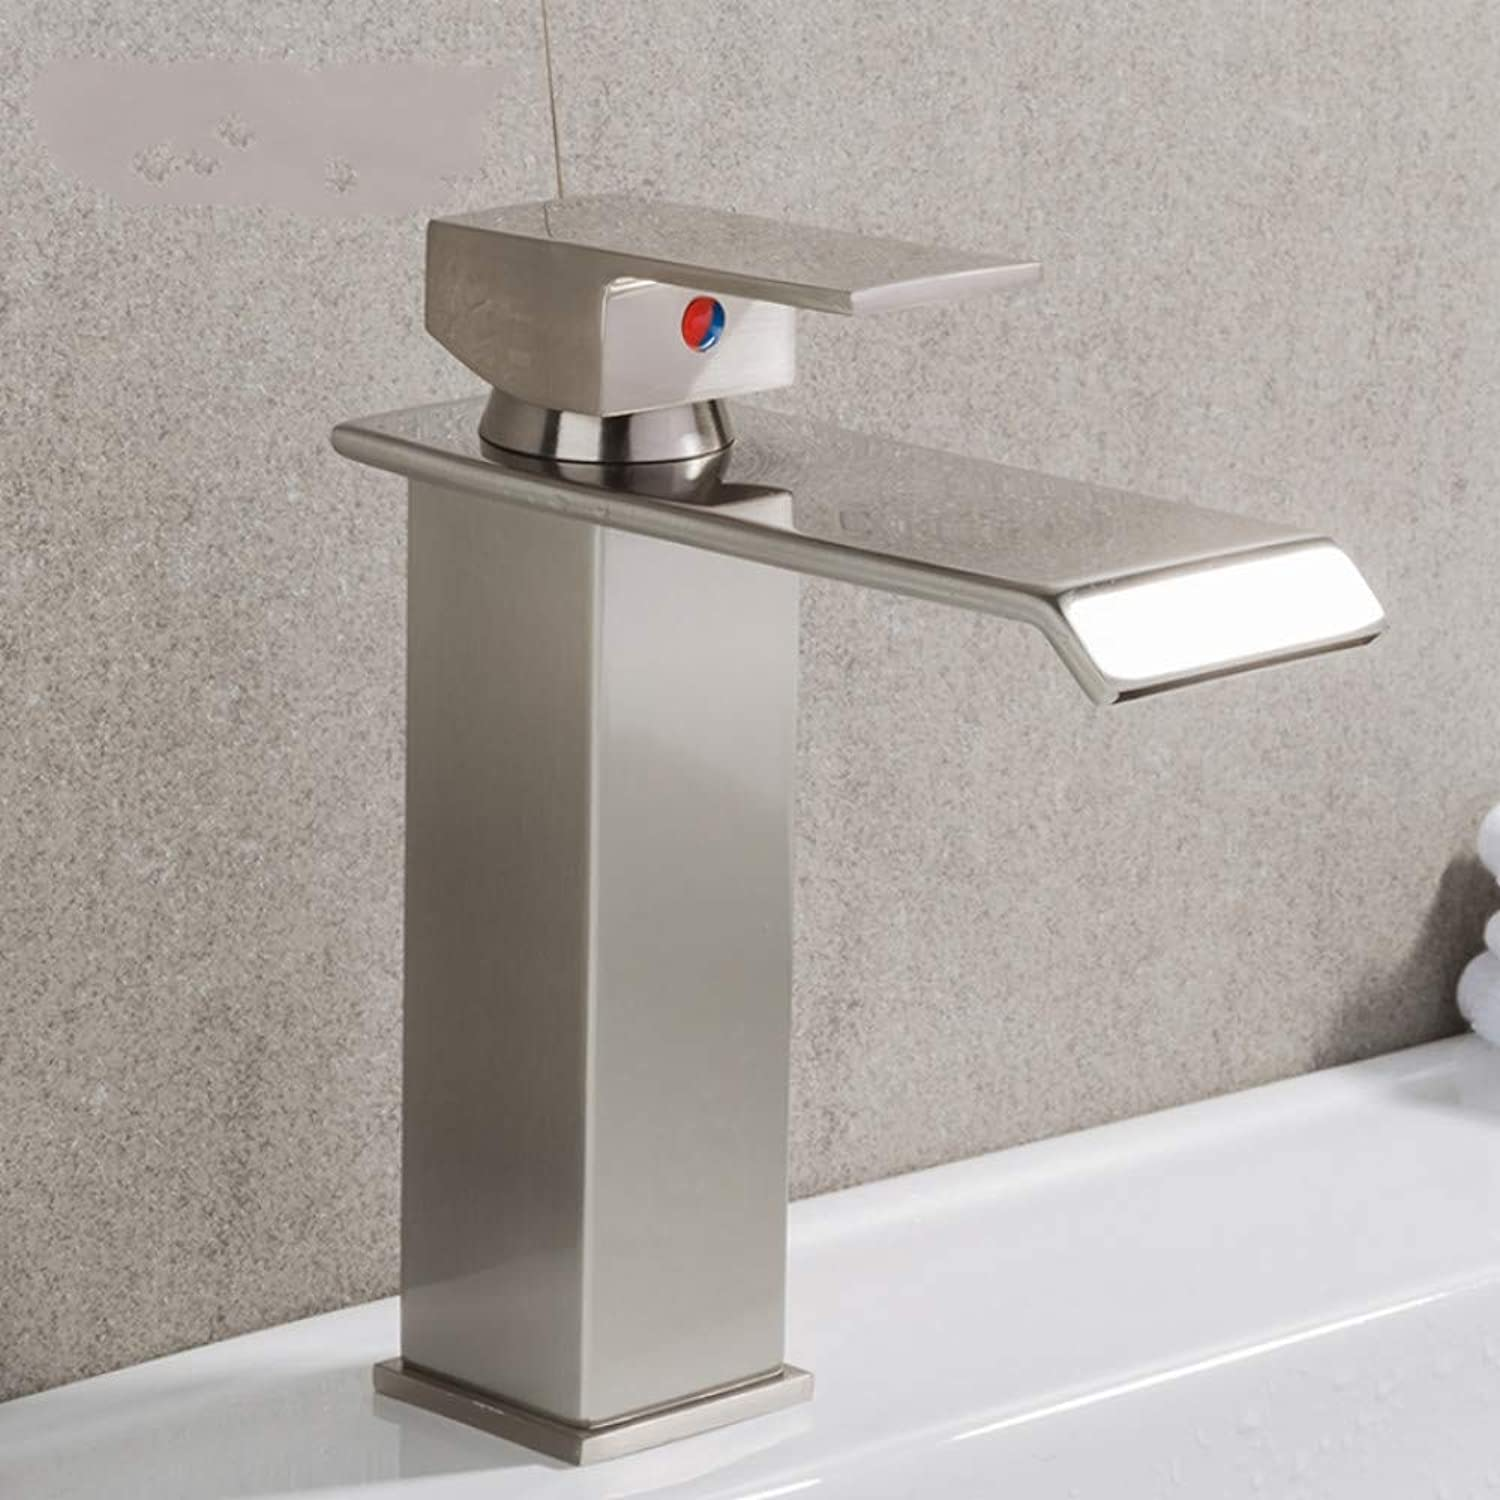 Mzdpp Newly Basin Faucet Bathroom Waterfall Faucet Mixer Single Handle Brass Faucet Hot and Cold Bath Mixers Square Taps